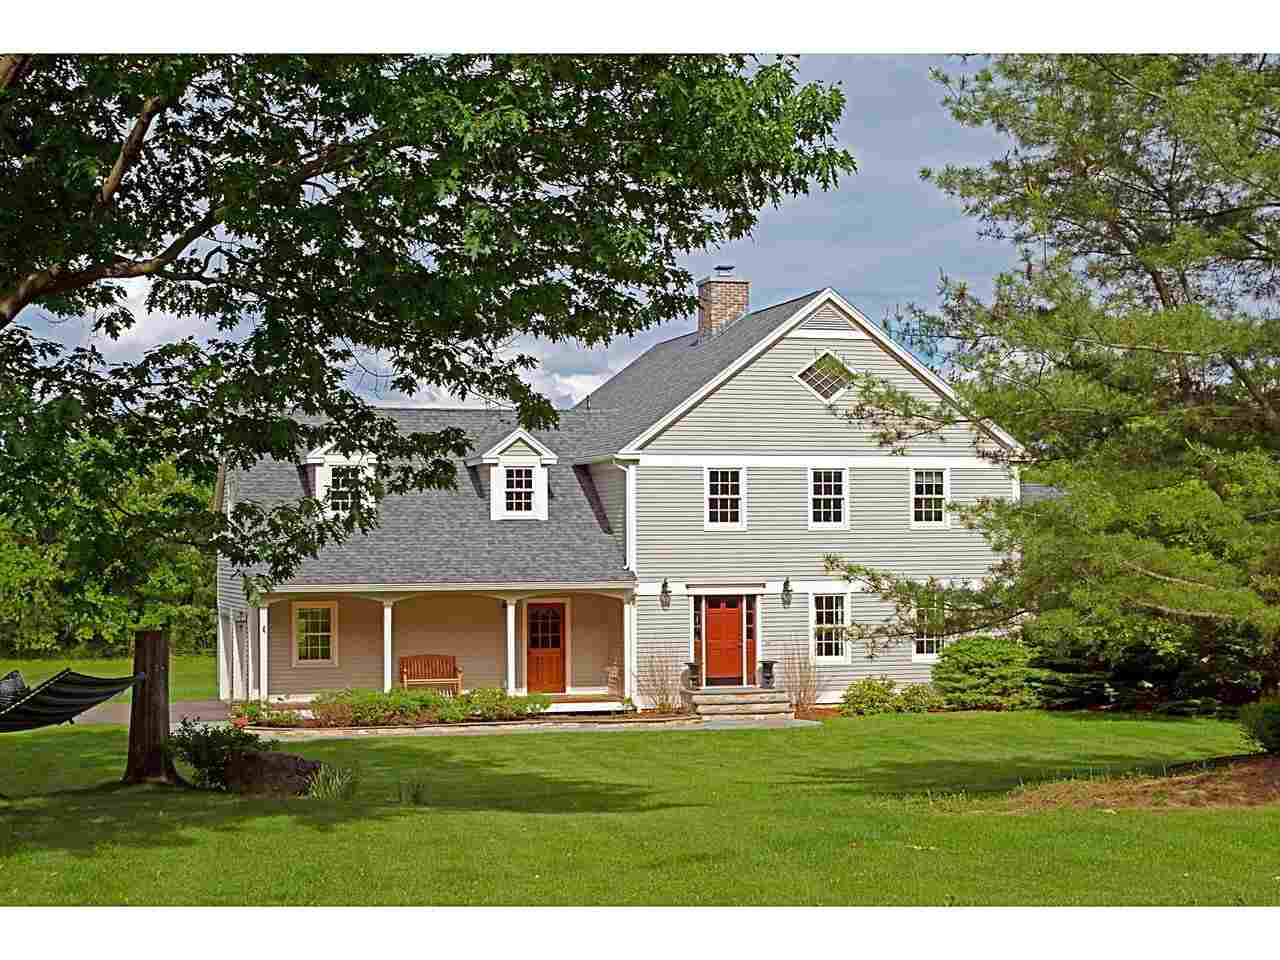 817 Beaver Creek Road, Shelburne